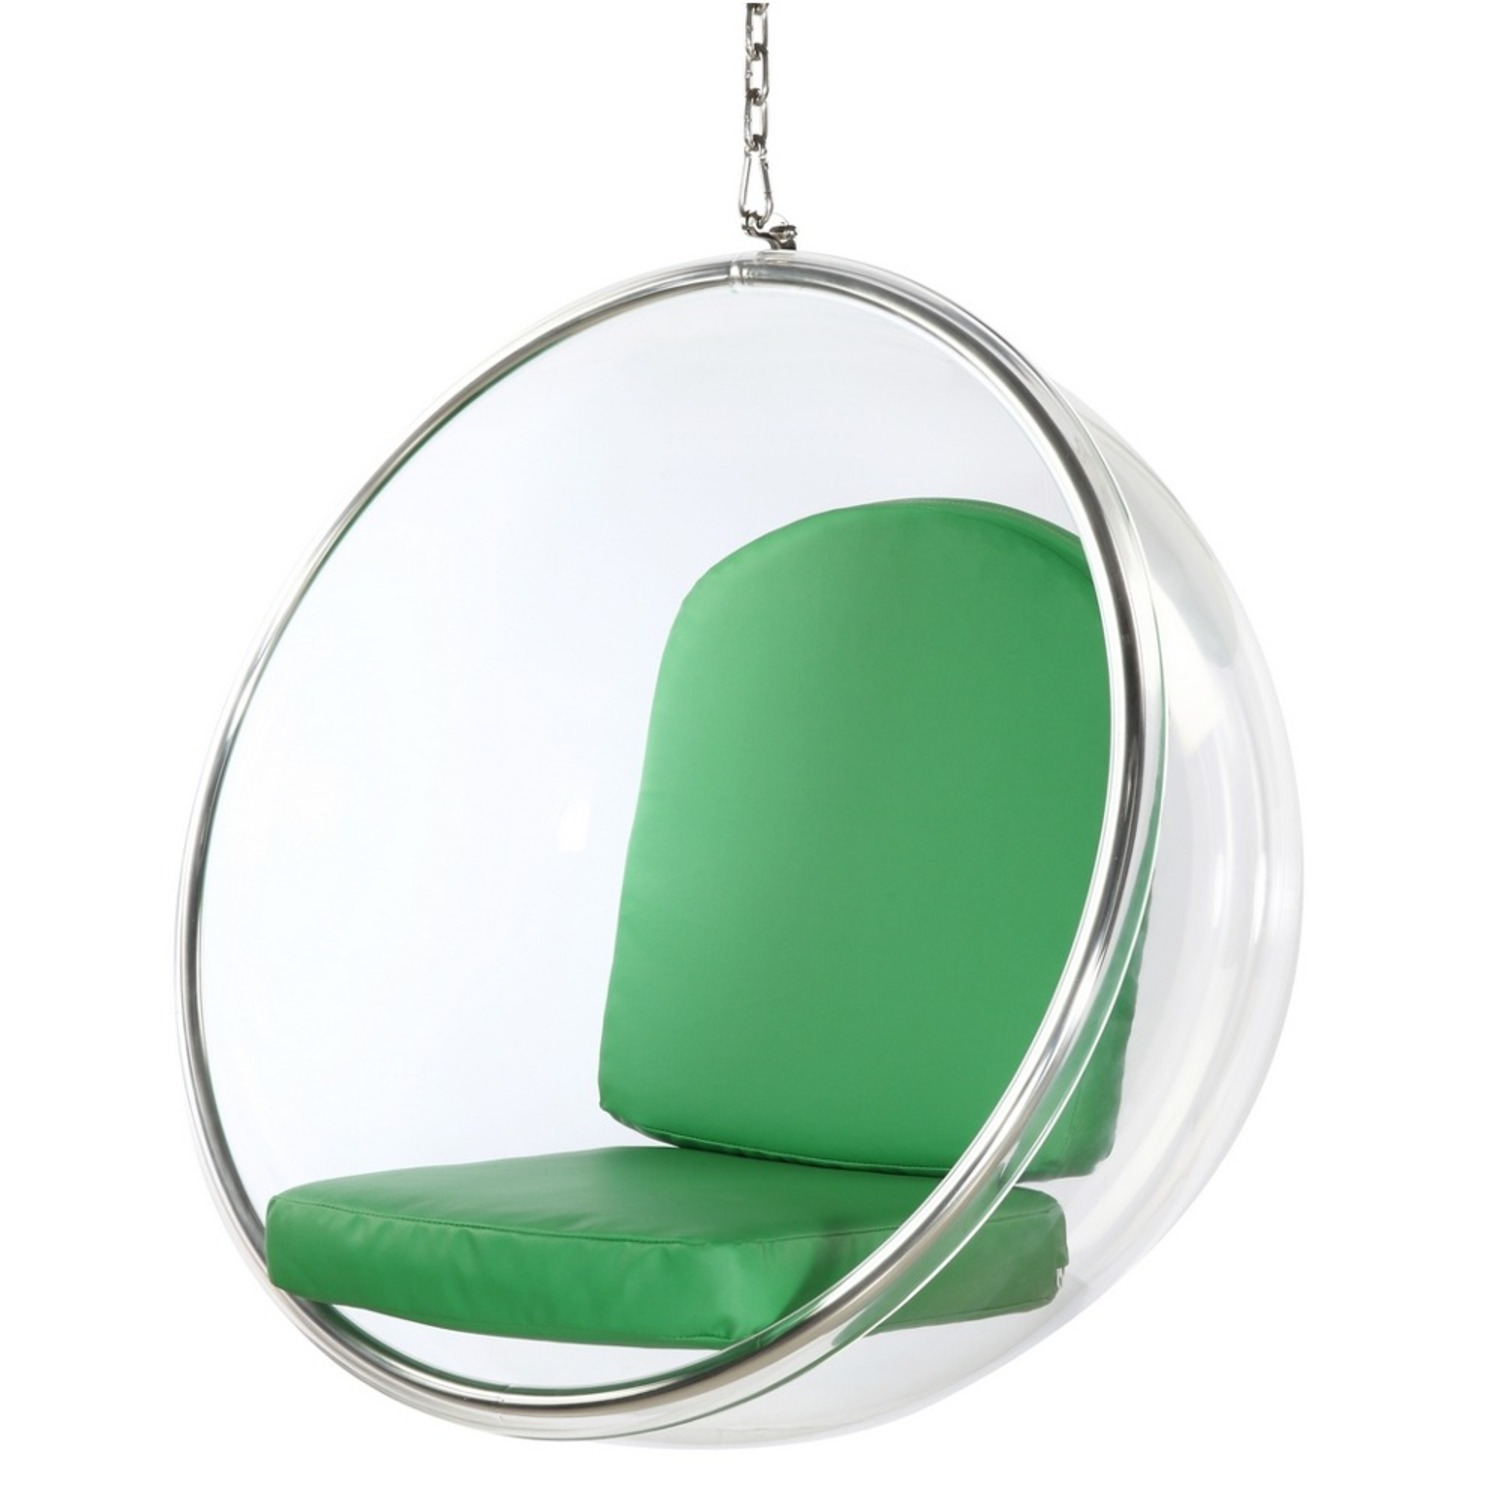 Hanging Chair In Clear Acrylic & Green PU Leather - image-4